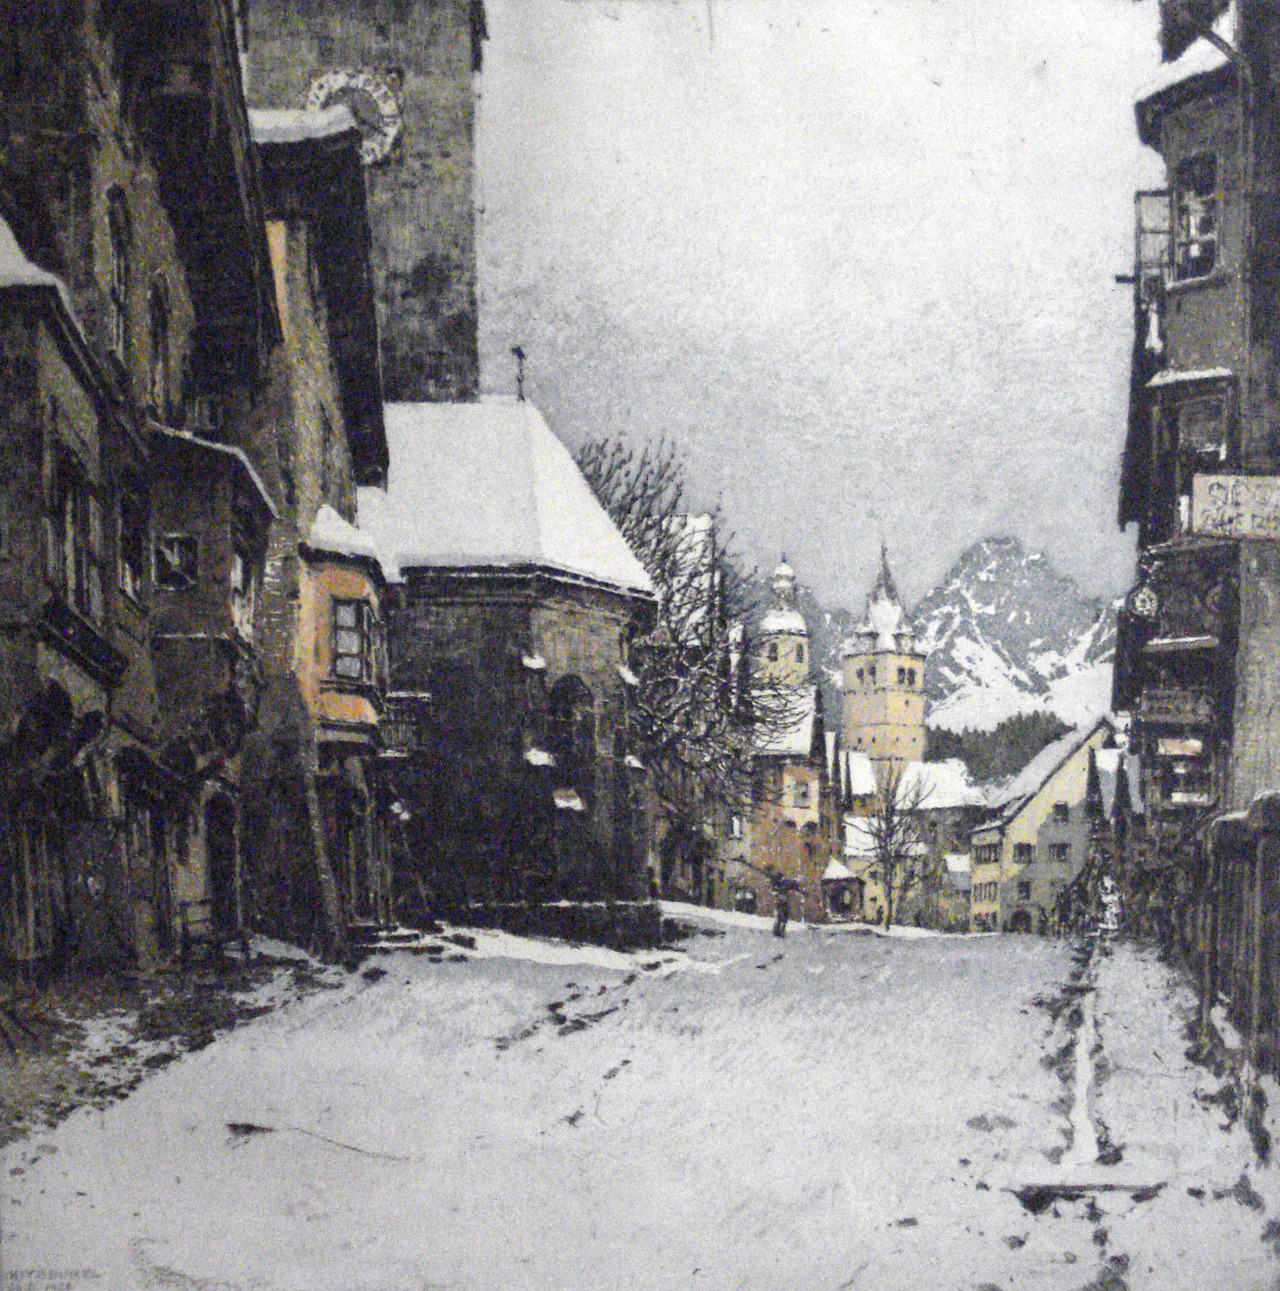 Skier on the street in Kitzbühel, Austria. Hand colored etching and aquatint by Luigi Kasimir, 1926.